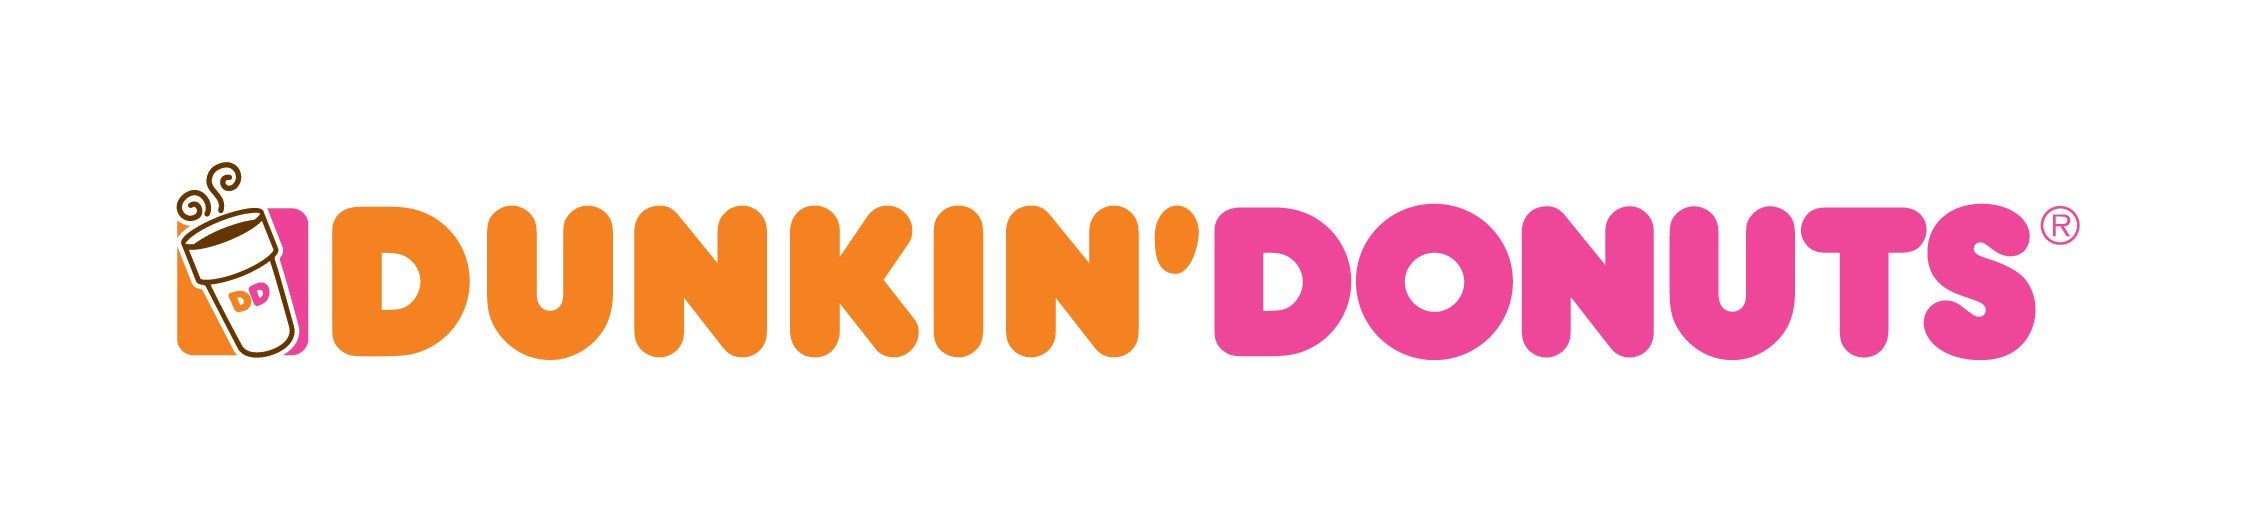 dd dunkin donuts png logo 3120 free transparent png logos